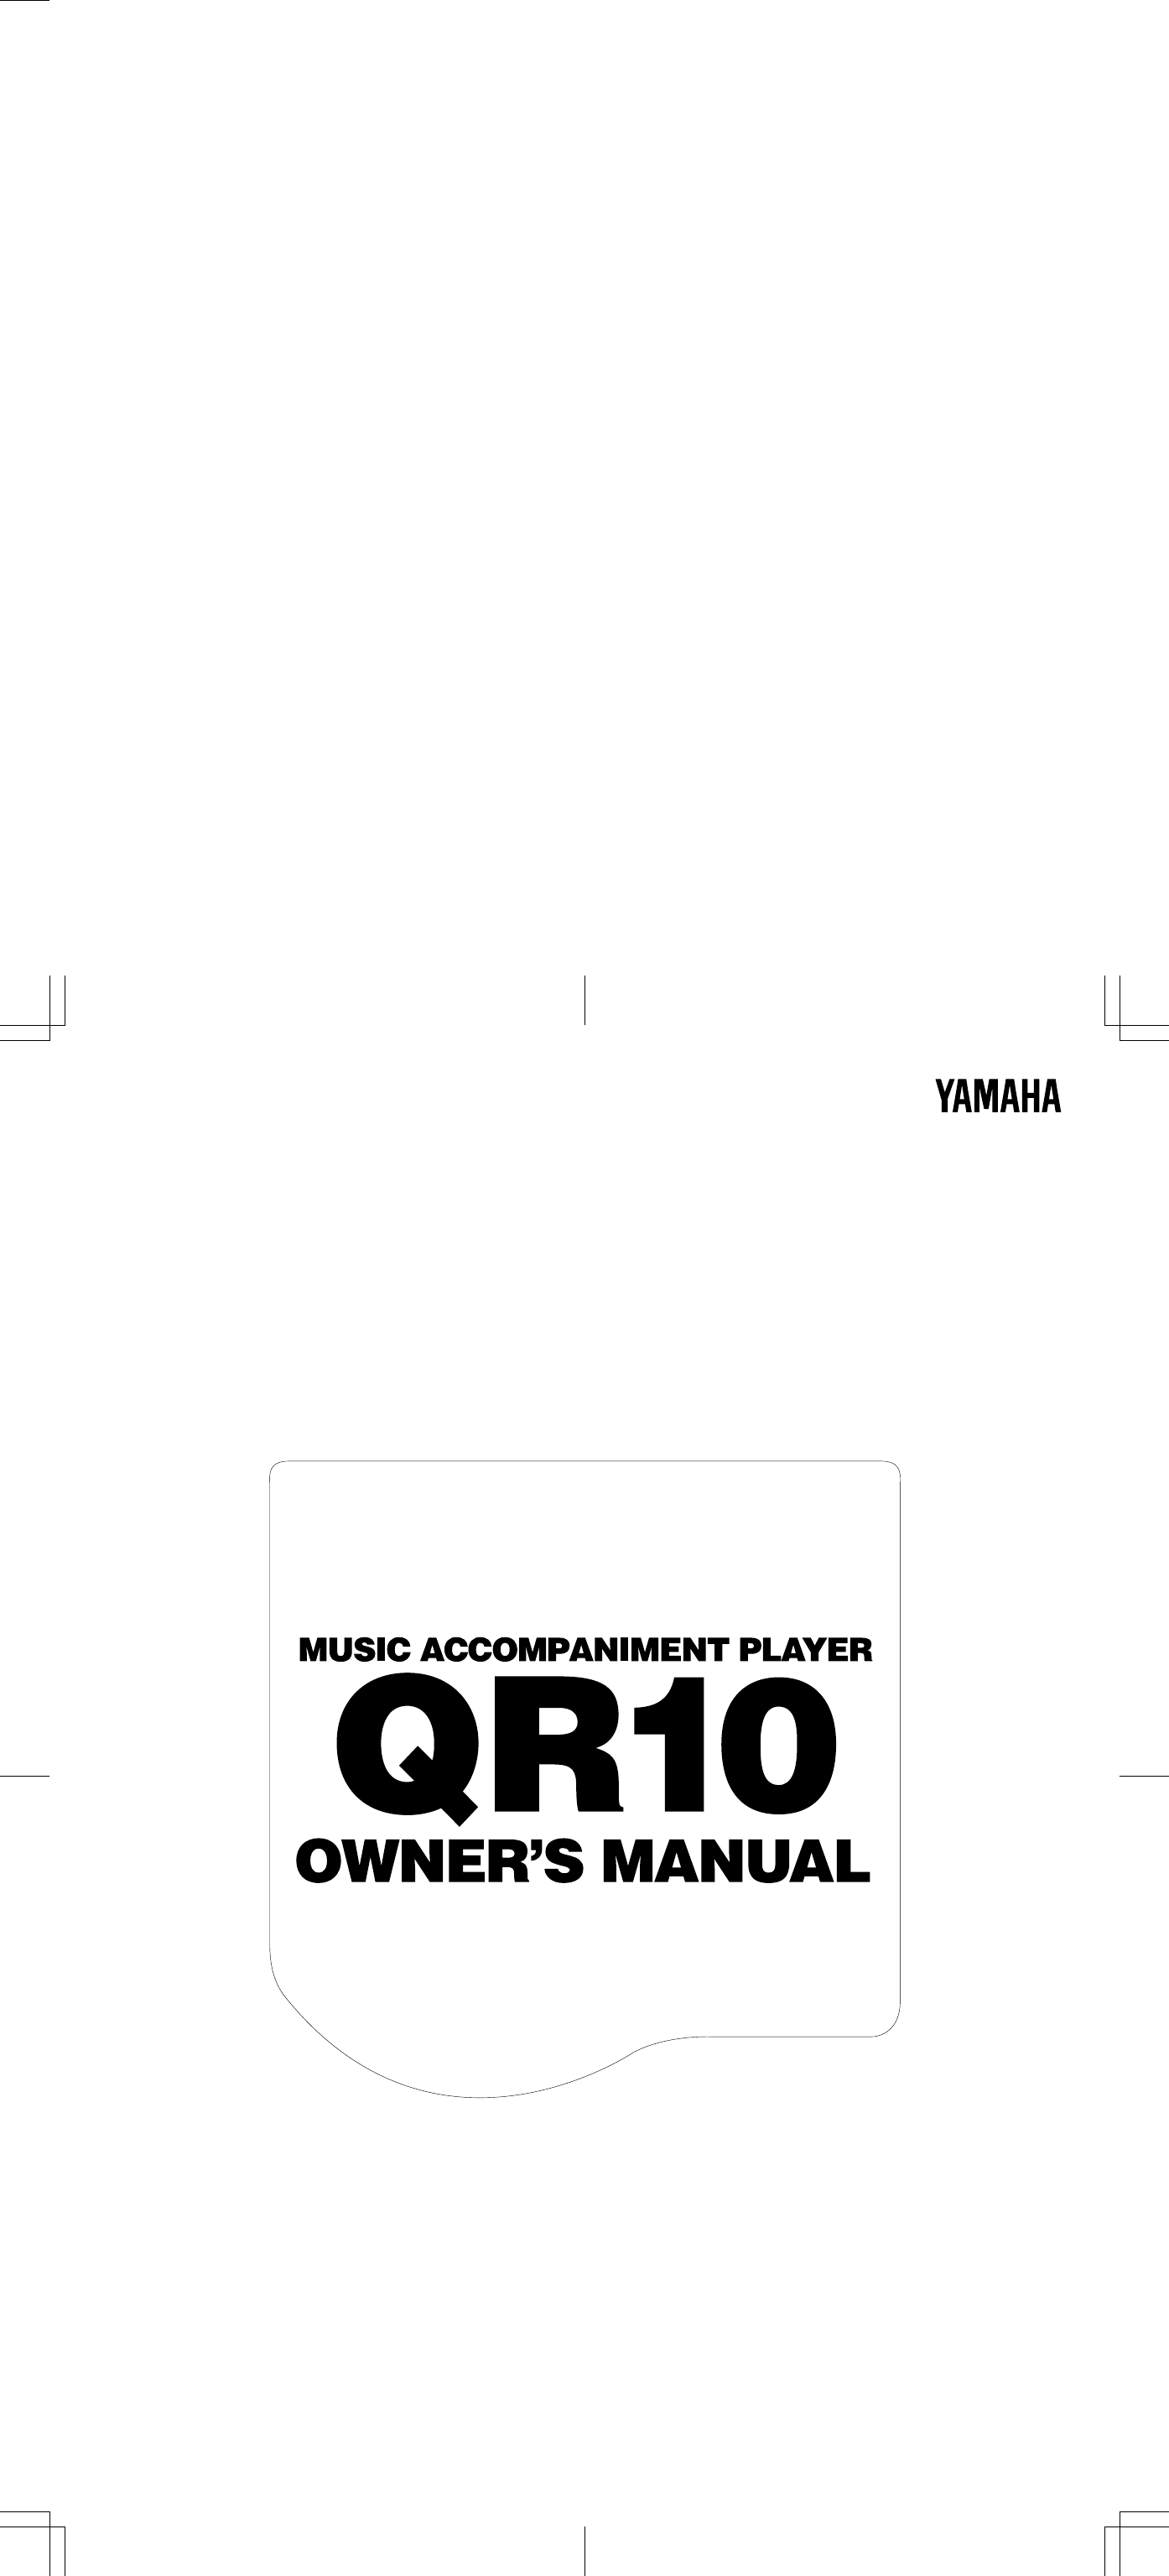 Yamaha Qr10 Owners Manual Bcontents 9v Voltage Regulator Circuit Besides Accordion Bass Diagram Of Piano